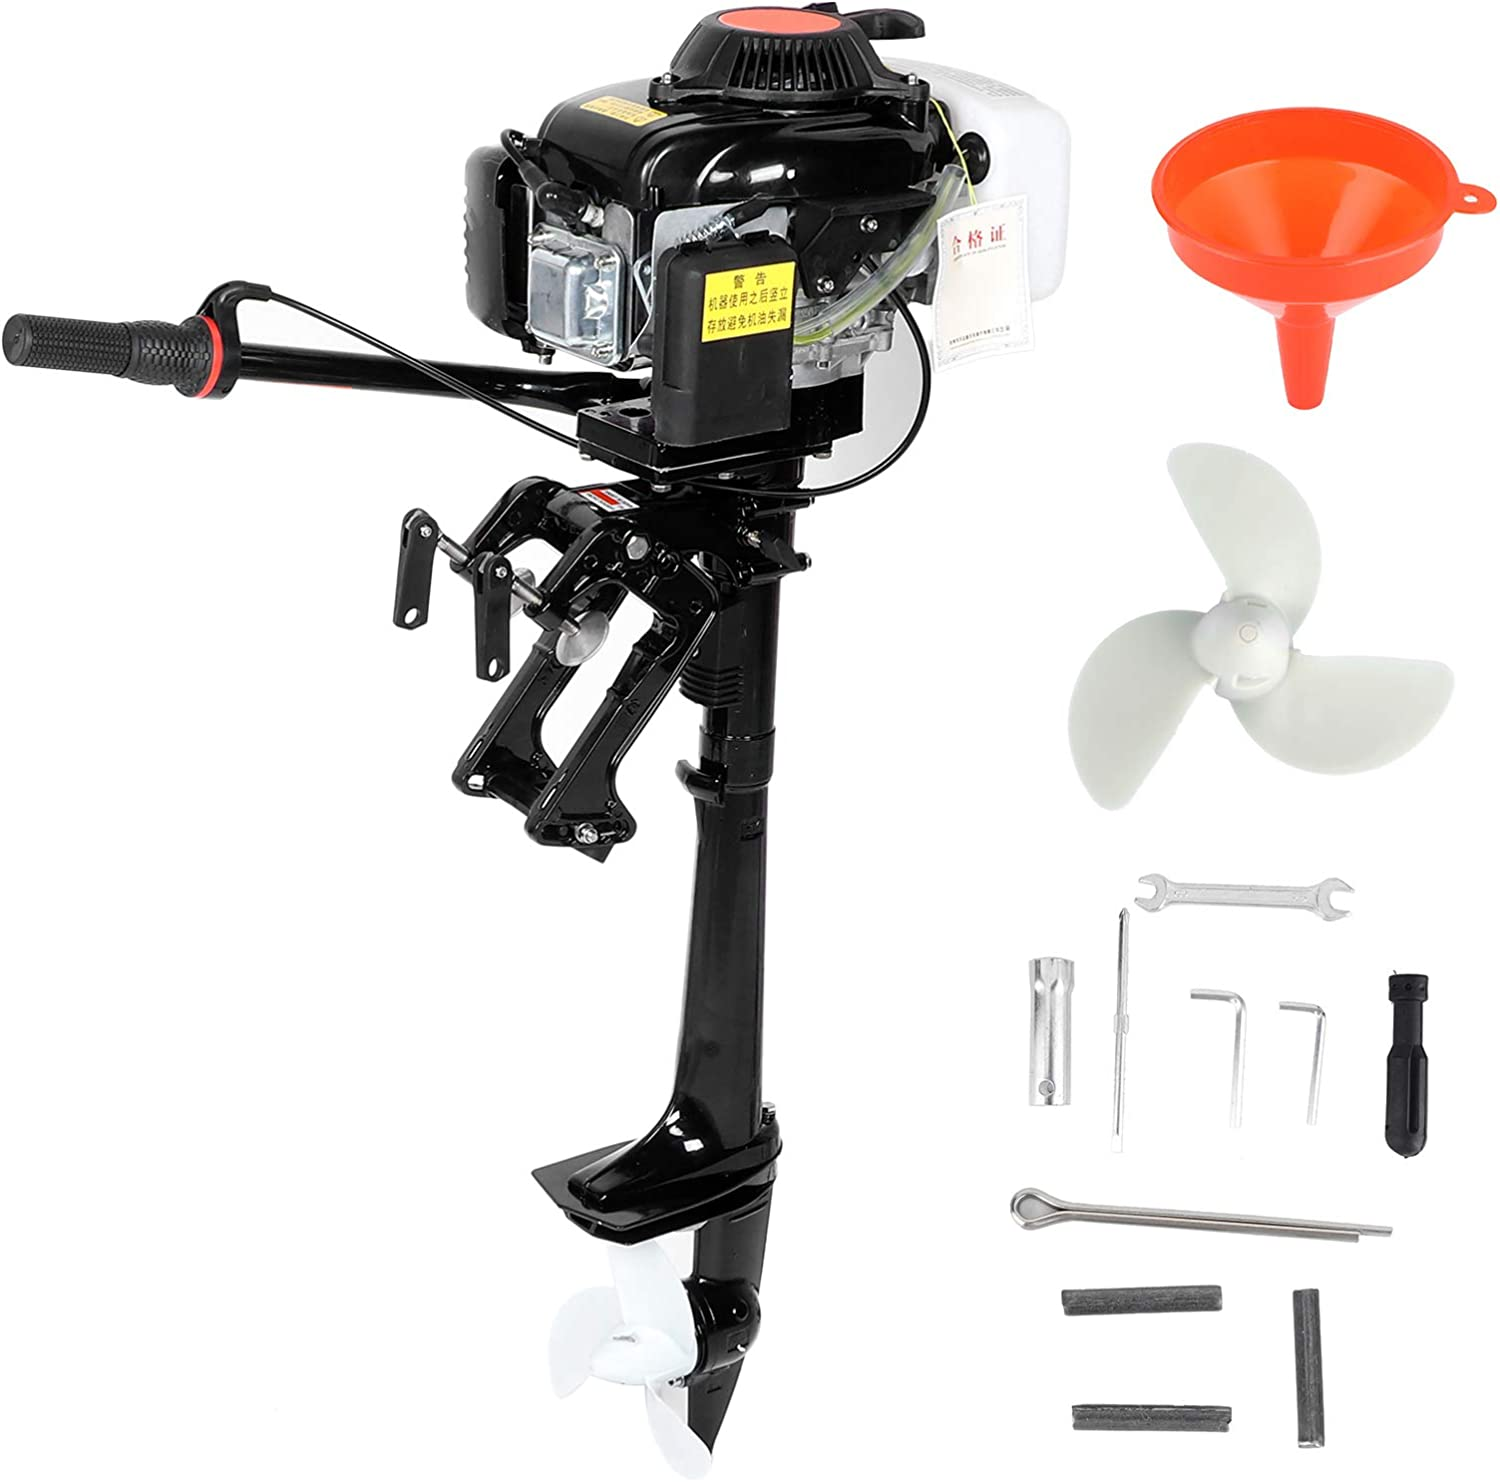 4 Stroke 4HP Max 65% OFF Outboard Motor Boat Sy Fashion Propeller Cooling Air Engine